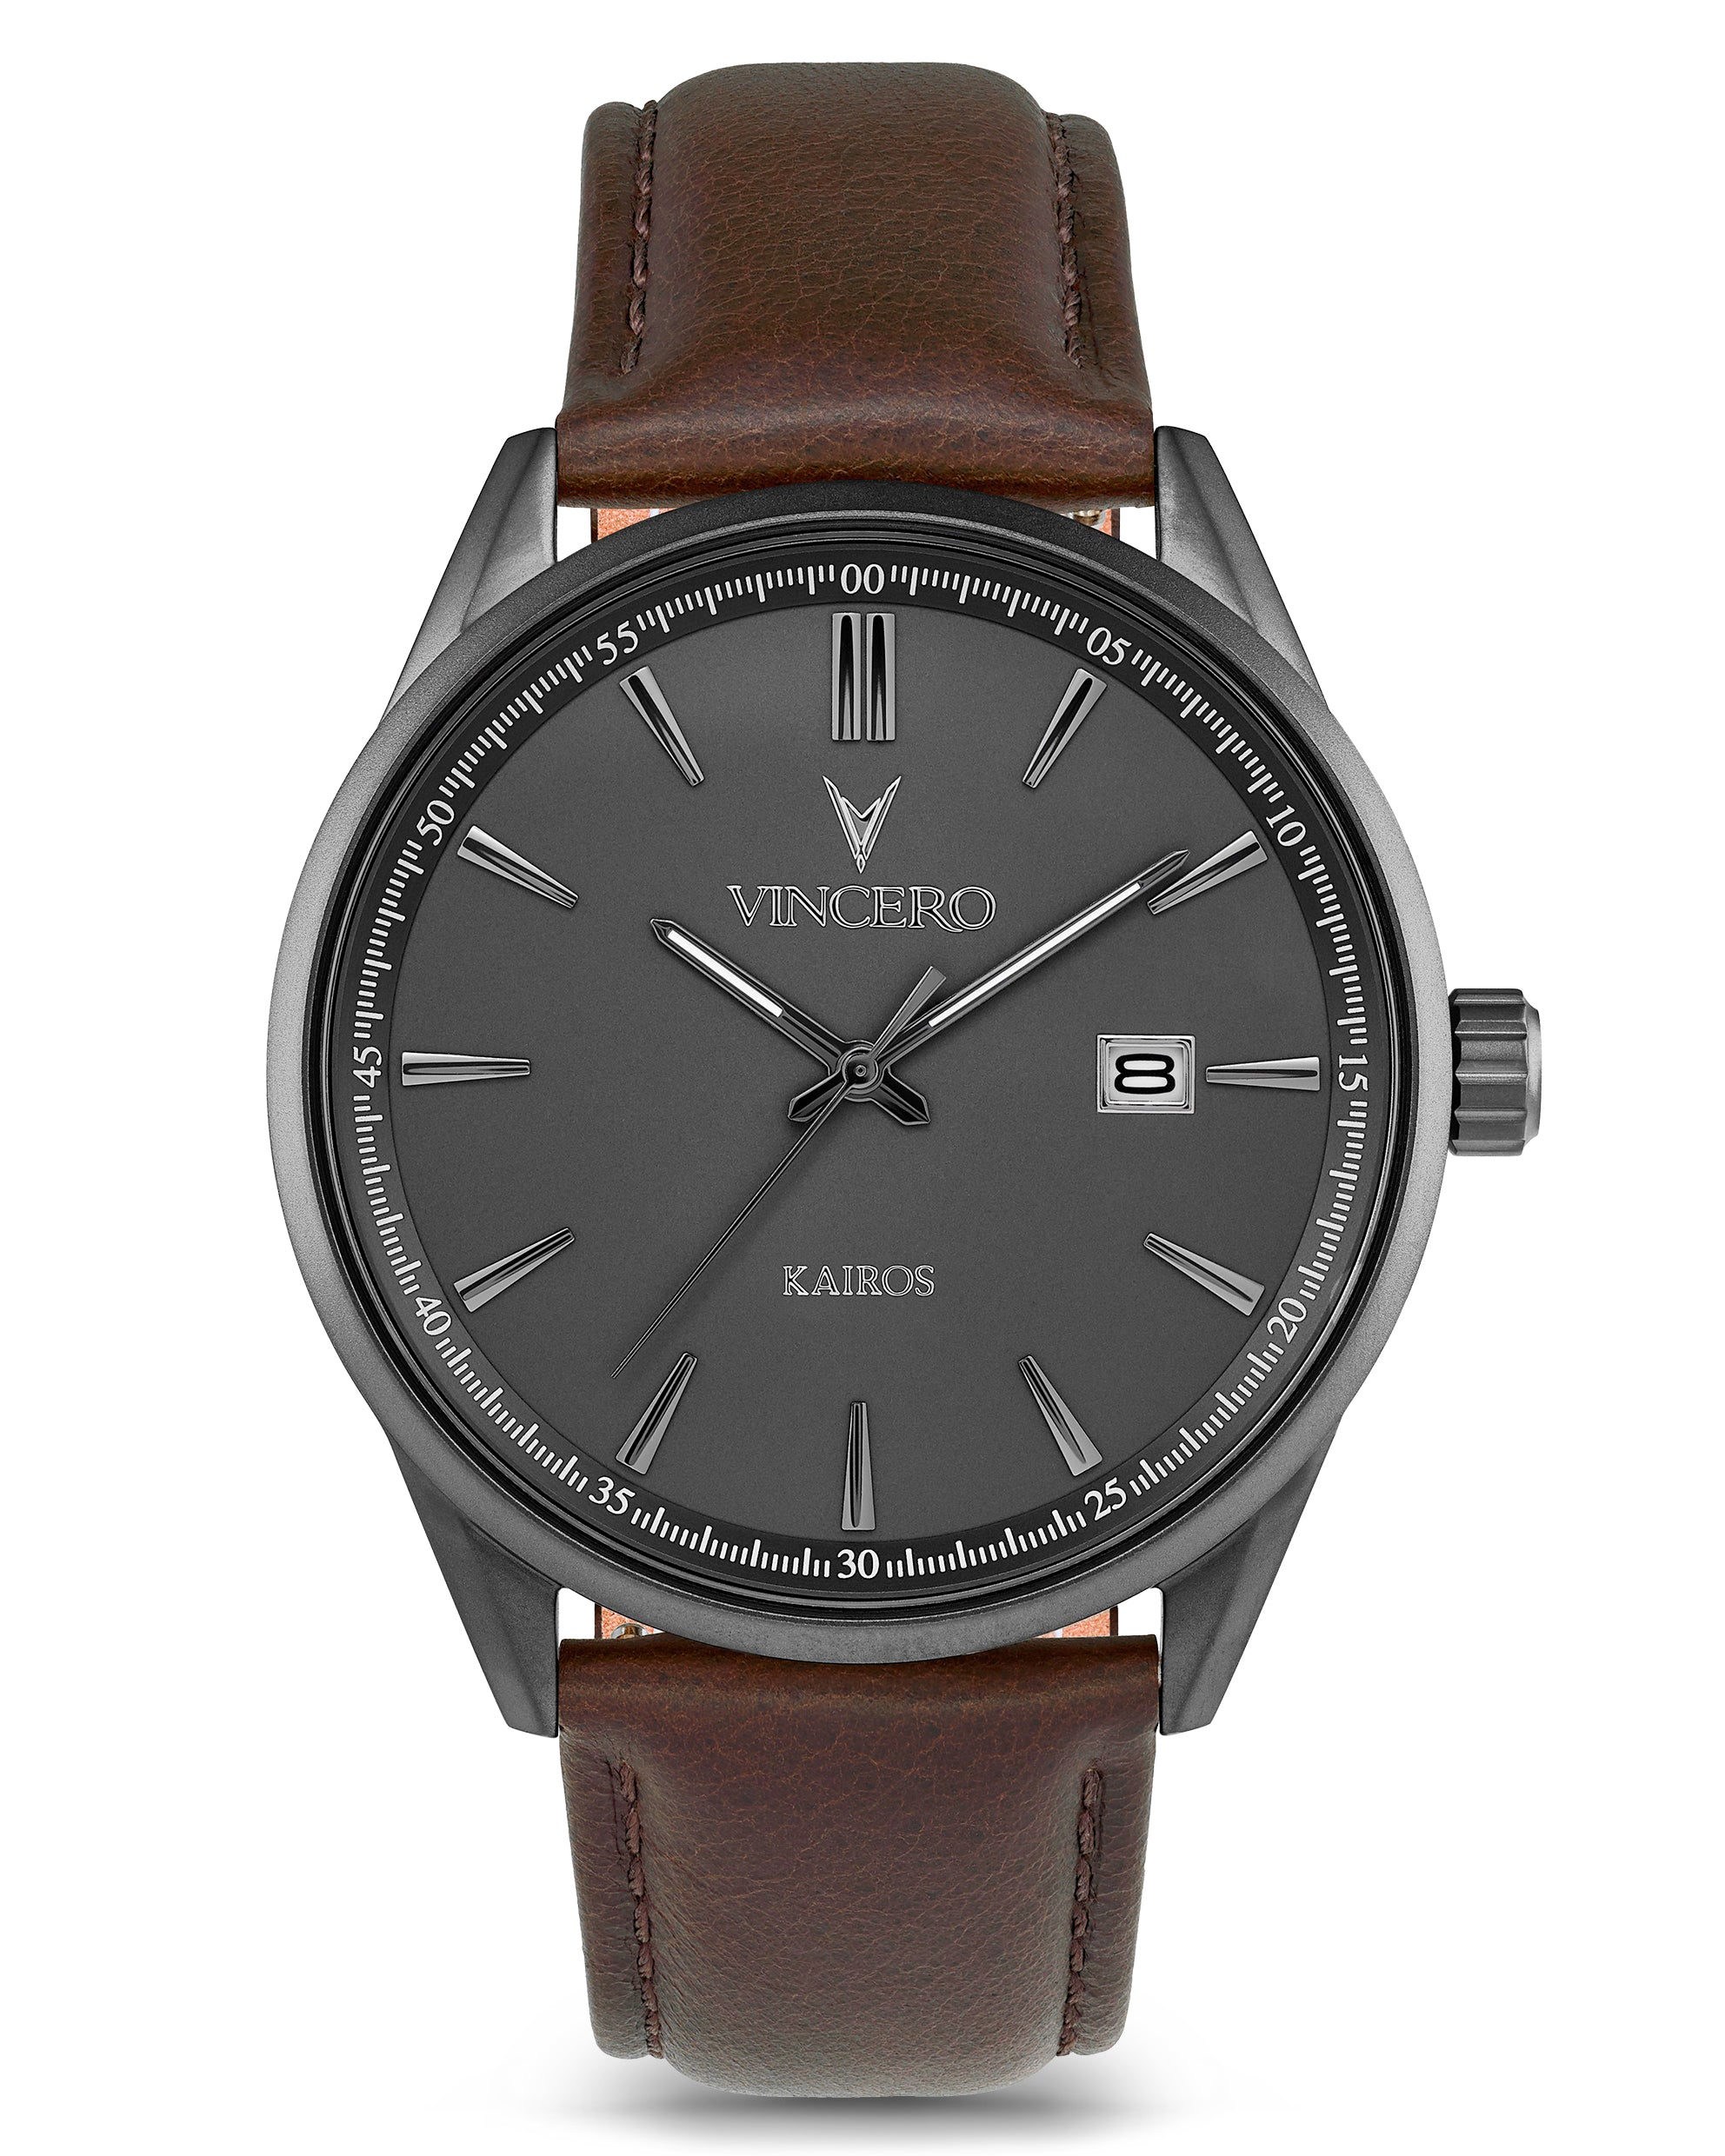 The Kairos - Gunmetal/Walnut